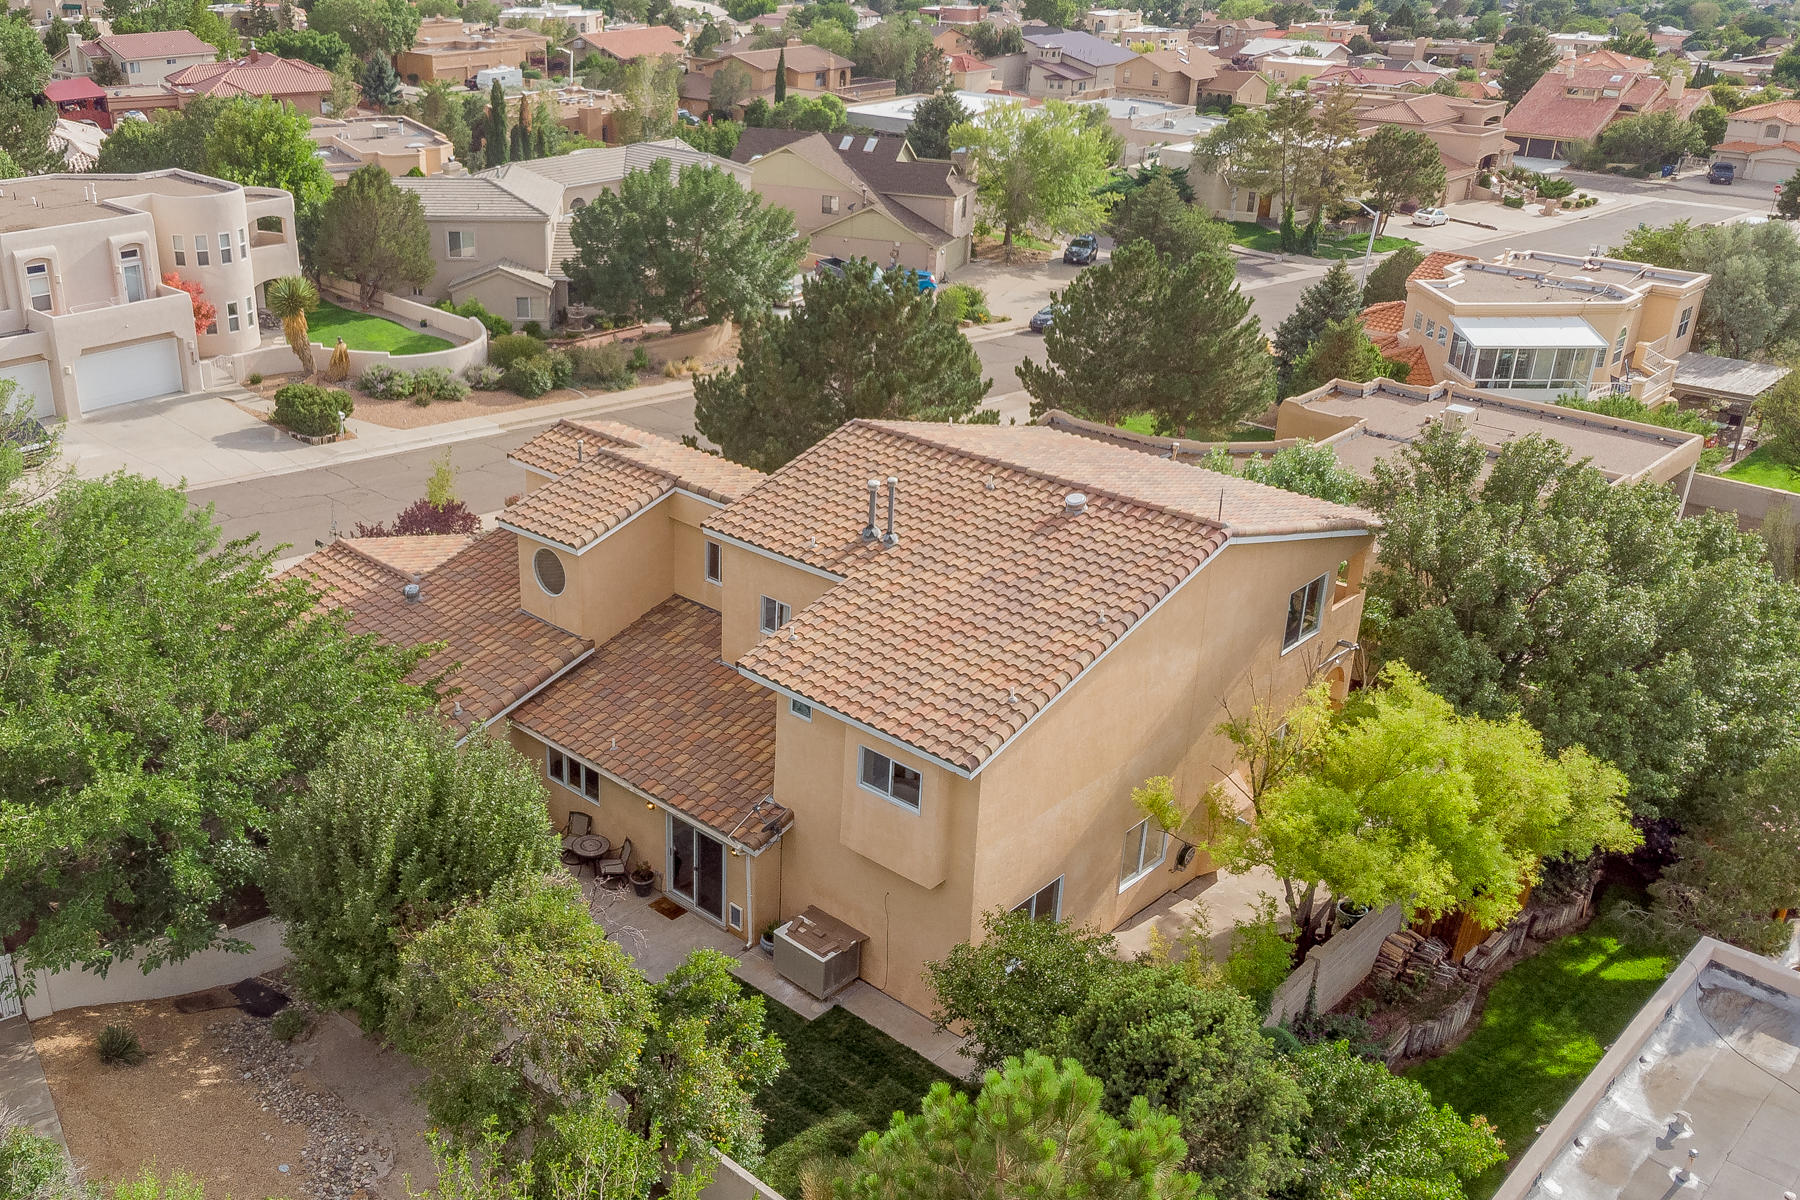 Stunning  Custom Mediterranean on 1/4 acre with spectacular city  light views! Located in the Foothills proximate to Embudo Canyon Spring & Hiking Trails - this gorgeous home is less than 6 miles to Sandia Labs. Enjoy balloons, sunsets & city lights while relaxing in the hot tub on the Owners Suite Balcony. Perfect home for entertaining featuring large rooms & outdoor spaces that can be configured to suit your lifestyle. Chef's gourmet kitchen with granite counters, wolf gas cooktop & ample pantry space. Elegant travertine gas log fireplace. Master bath features a jetted tub, separate shower, antique dresser style vanity & bombe mirrors. Outdoors is fully landscaped with automated sprinklers, real grass, fountains, arches, patios, & 25+ rose bushes.  Pre-inspected & repairs made.